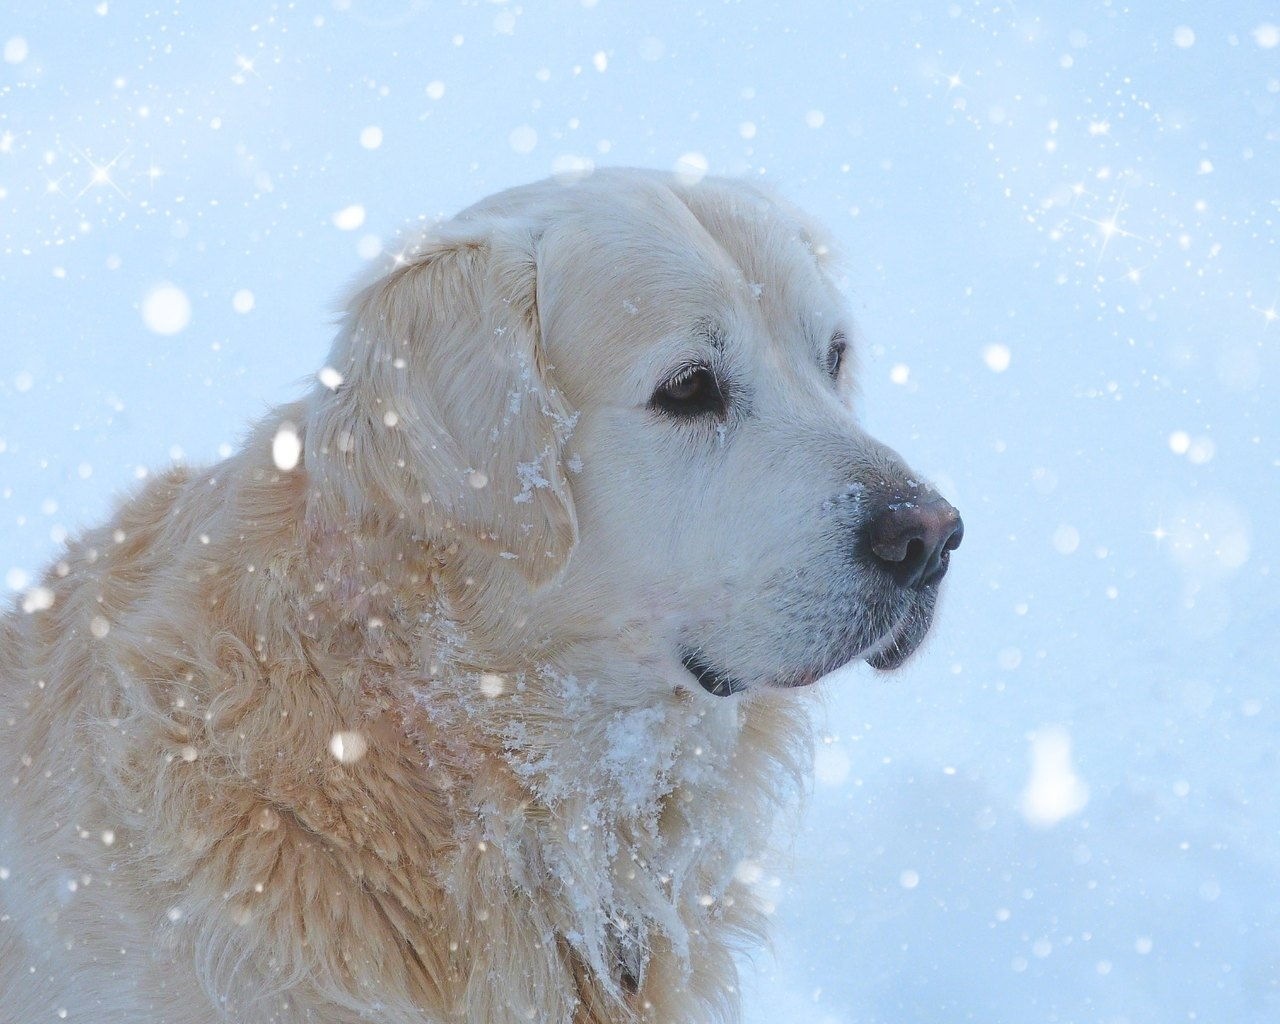 Golden Retriever Snowing for 1280 x 1024 resolution